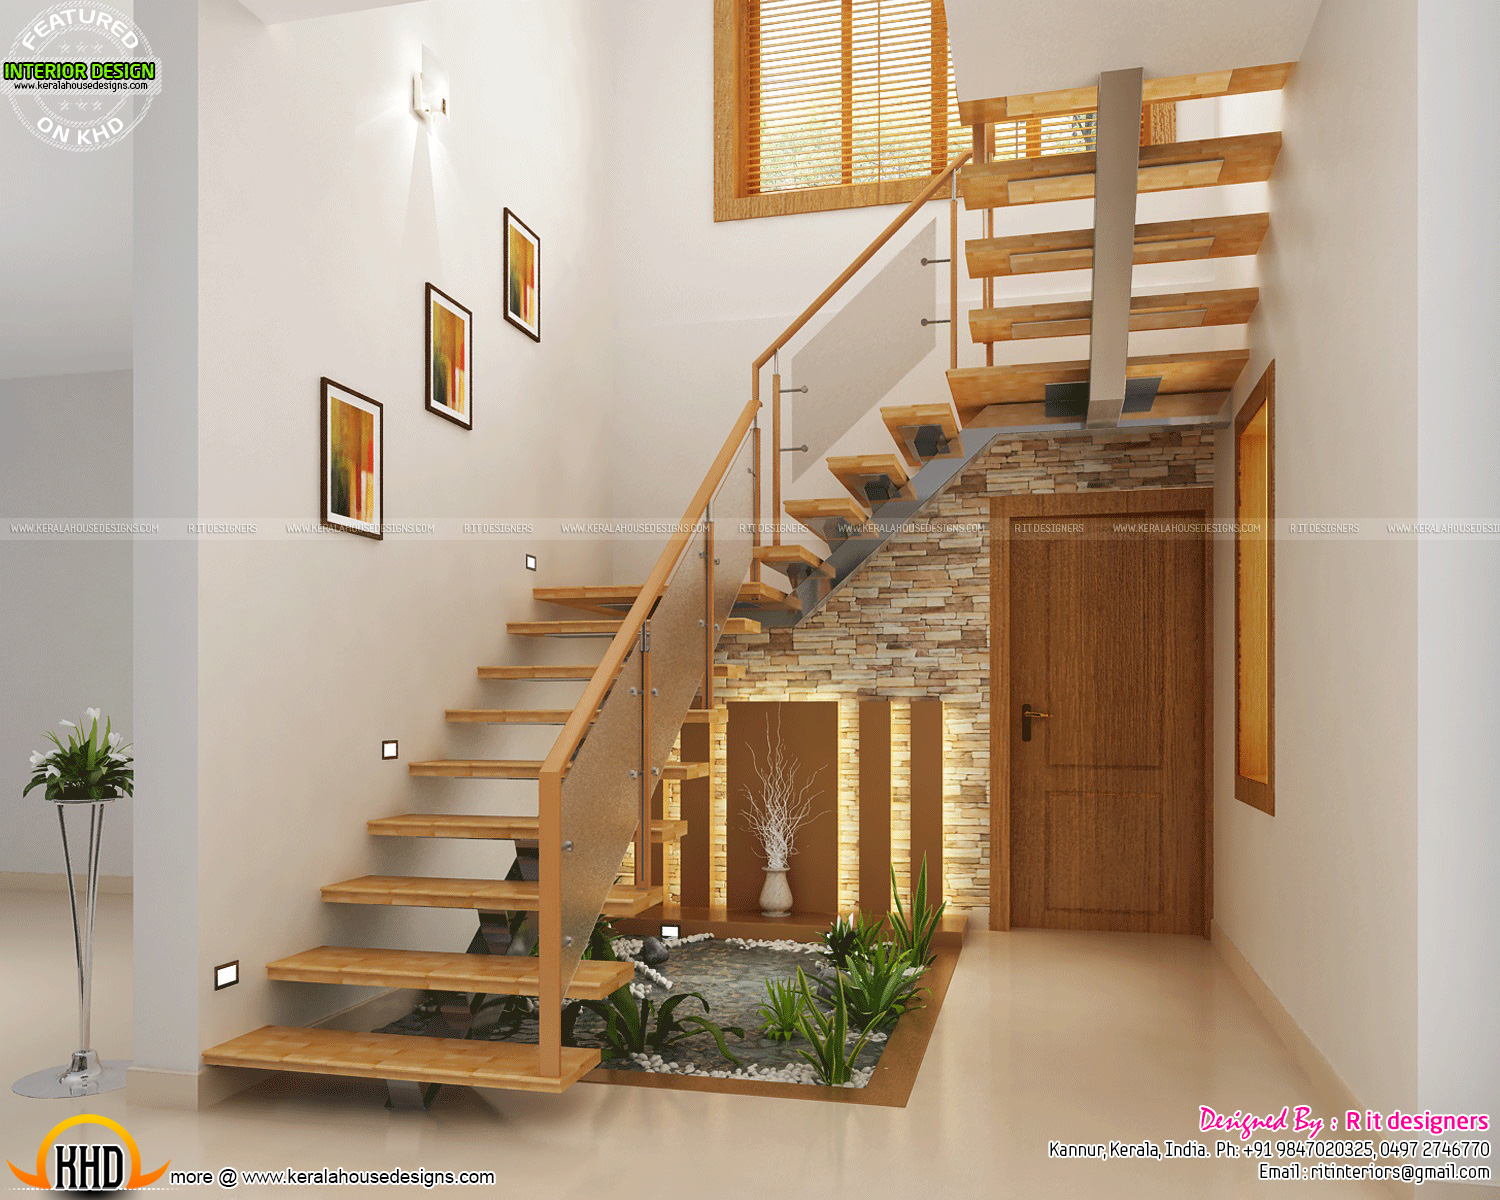 Under stair design wooden stair kitchen and living for Different interior designs of houses